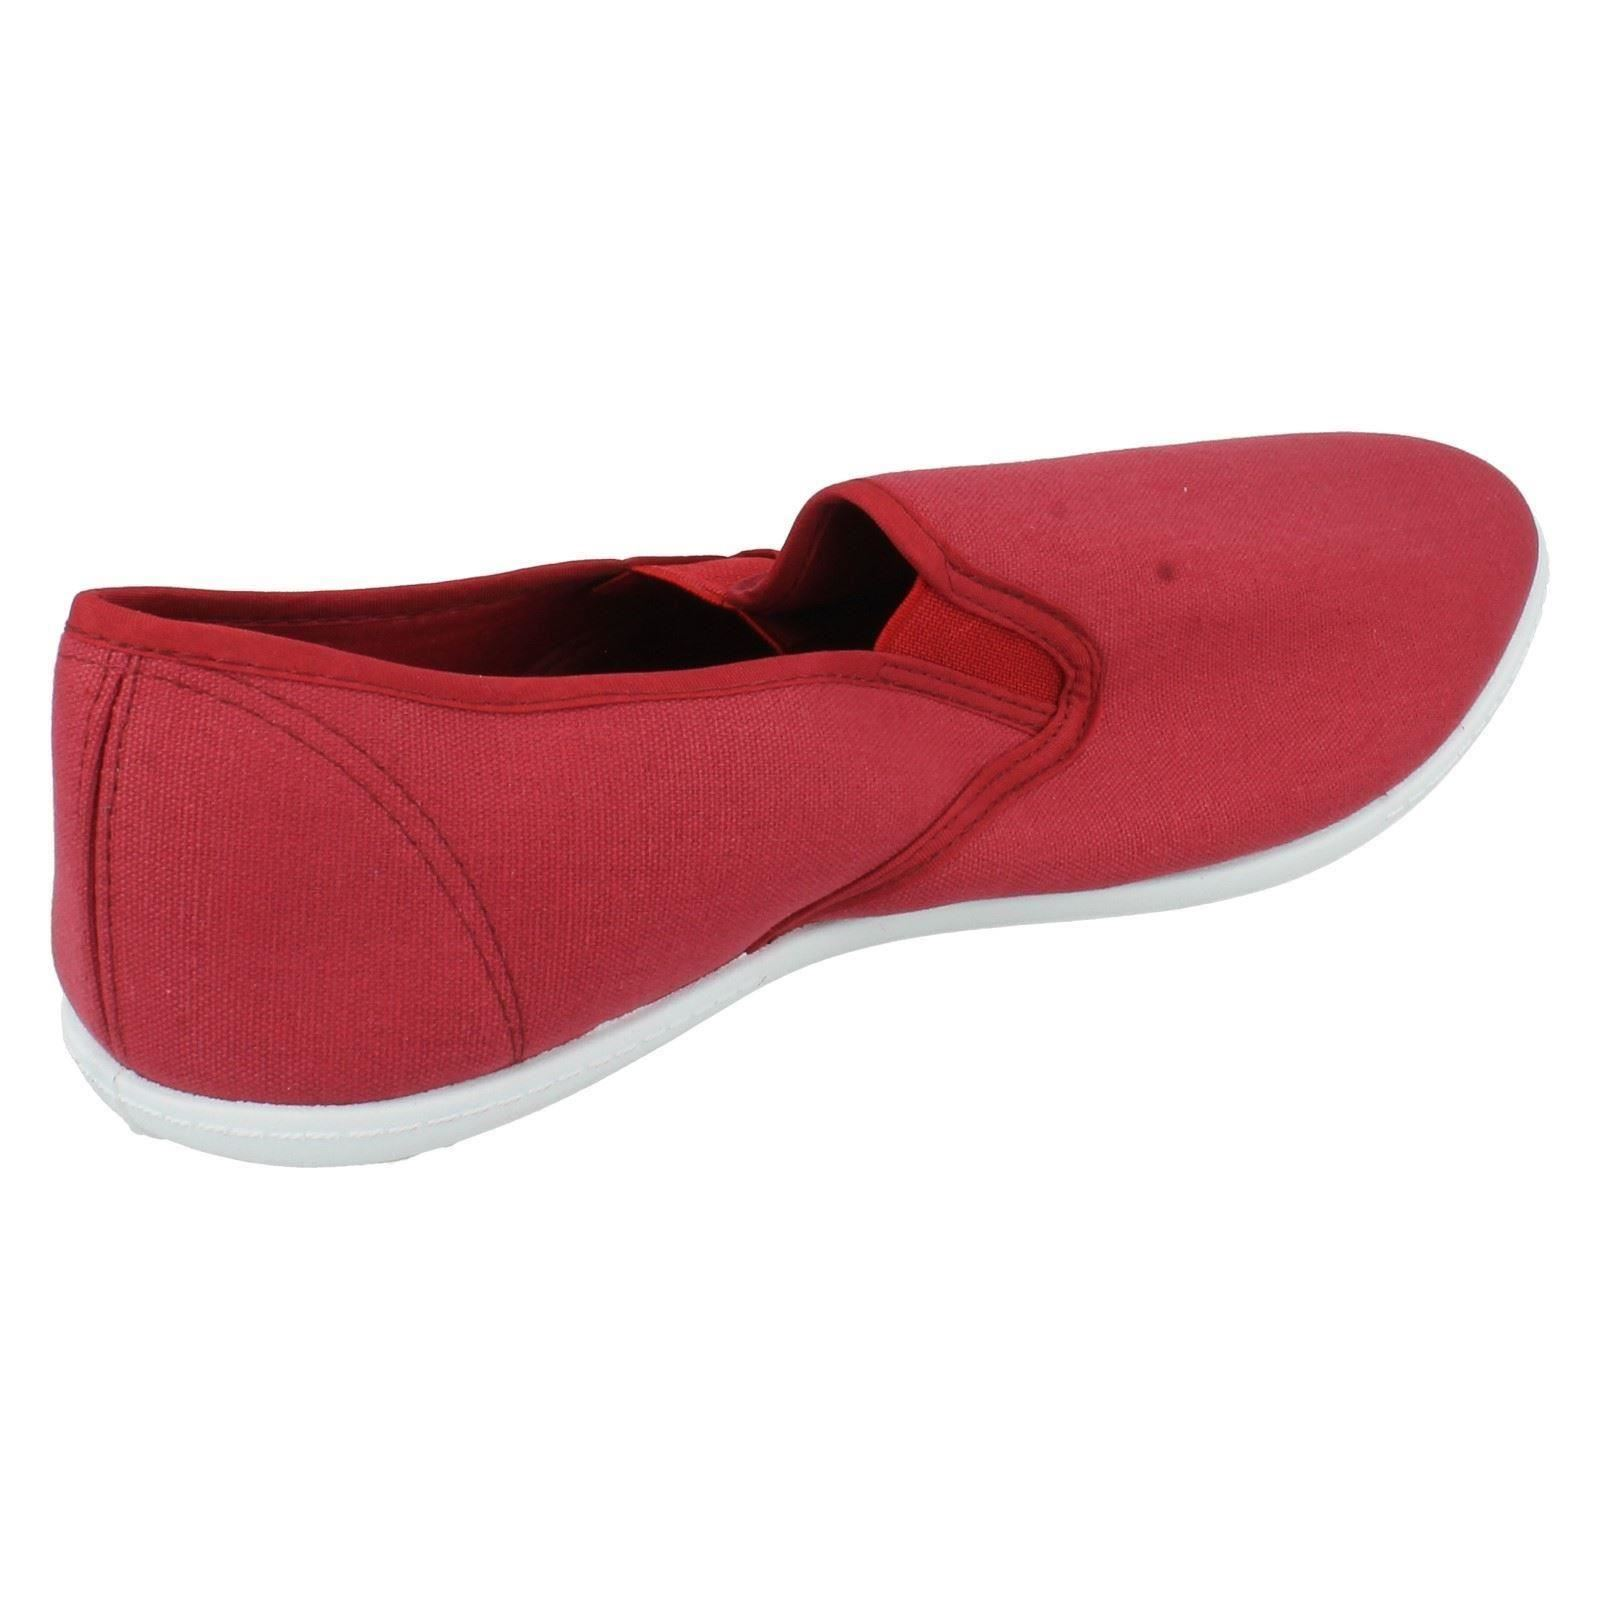 Para Hombre Unbranded Slip On Canvas Shoes a1096